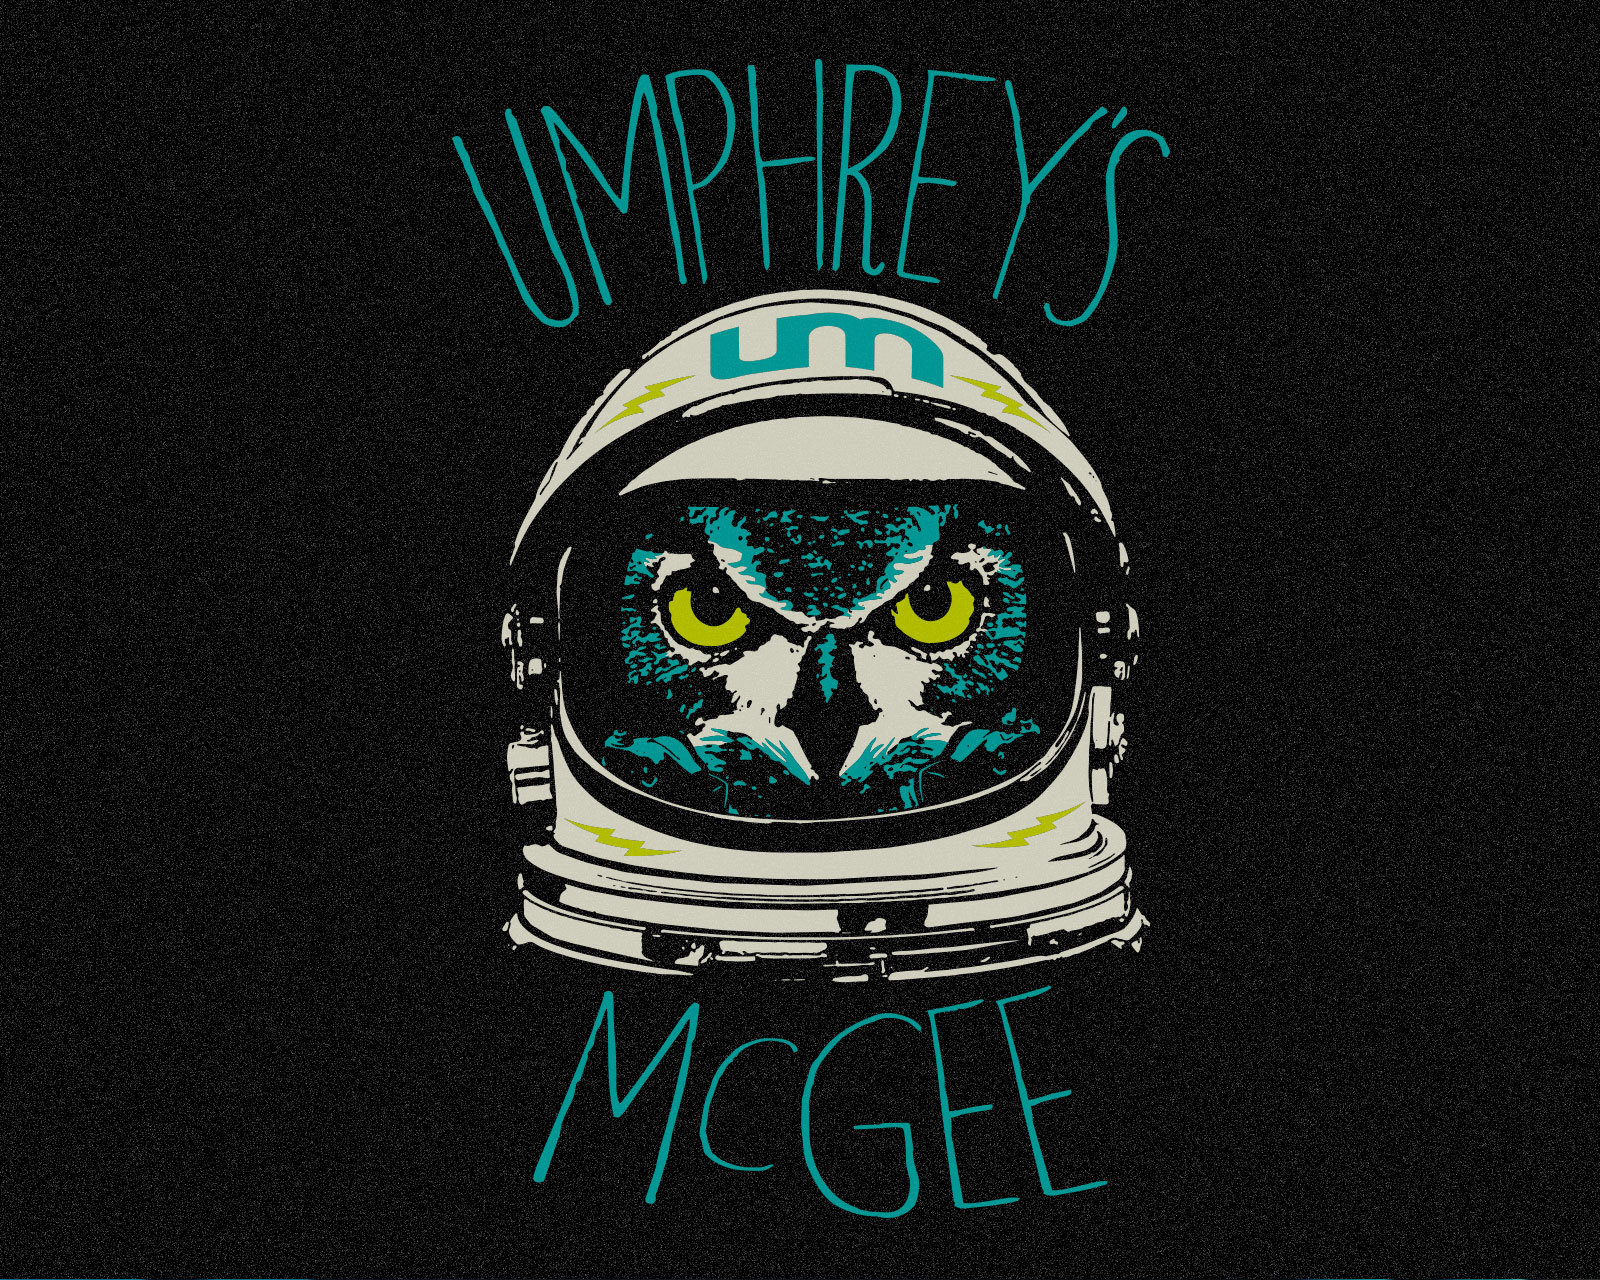 Umphree's Mcgee Space Owl